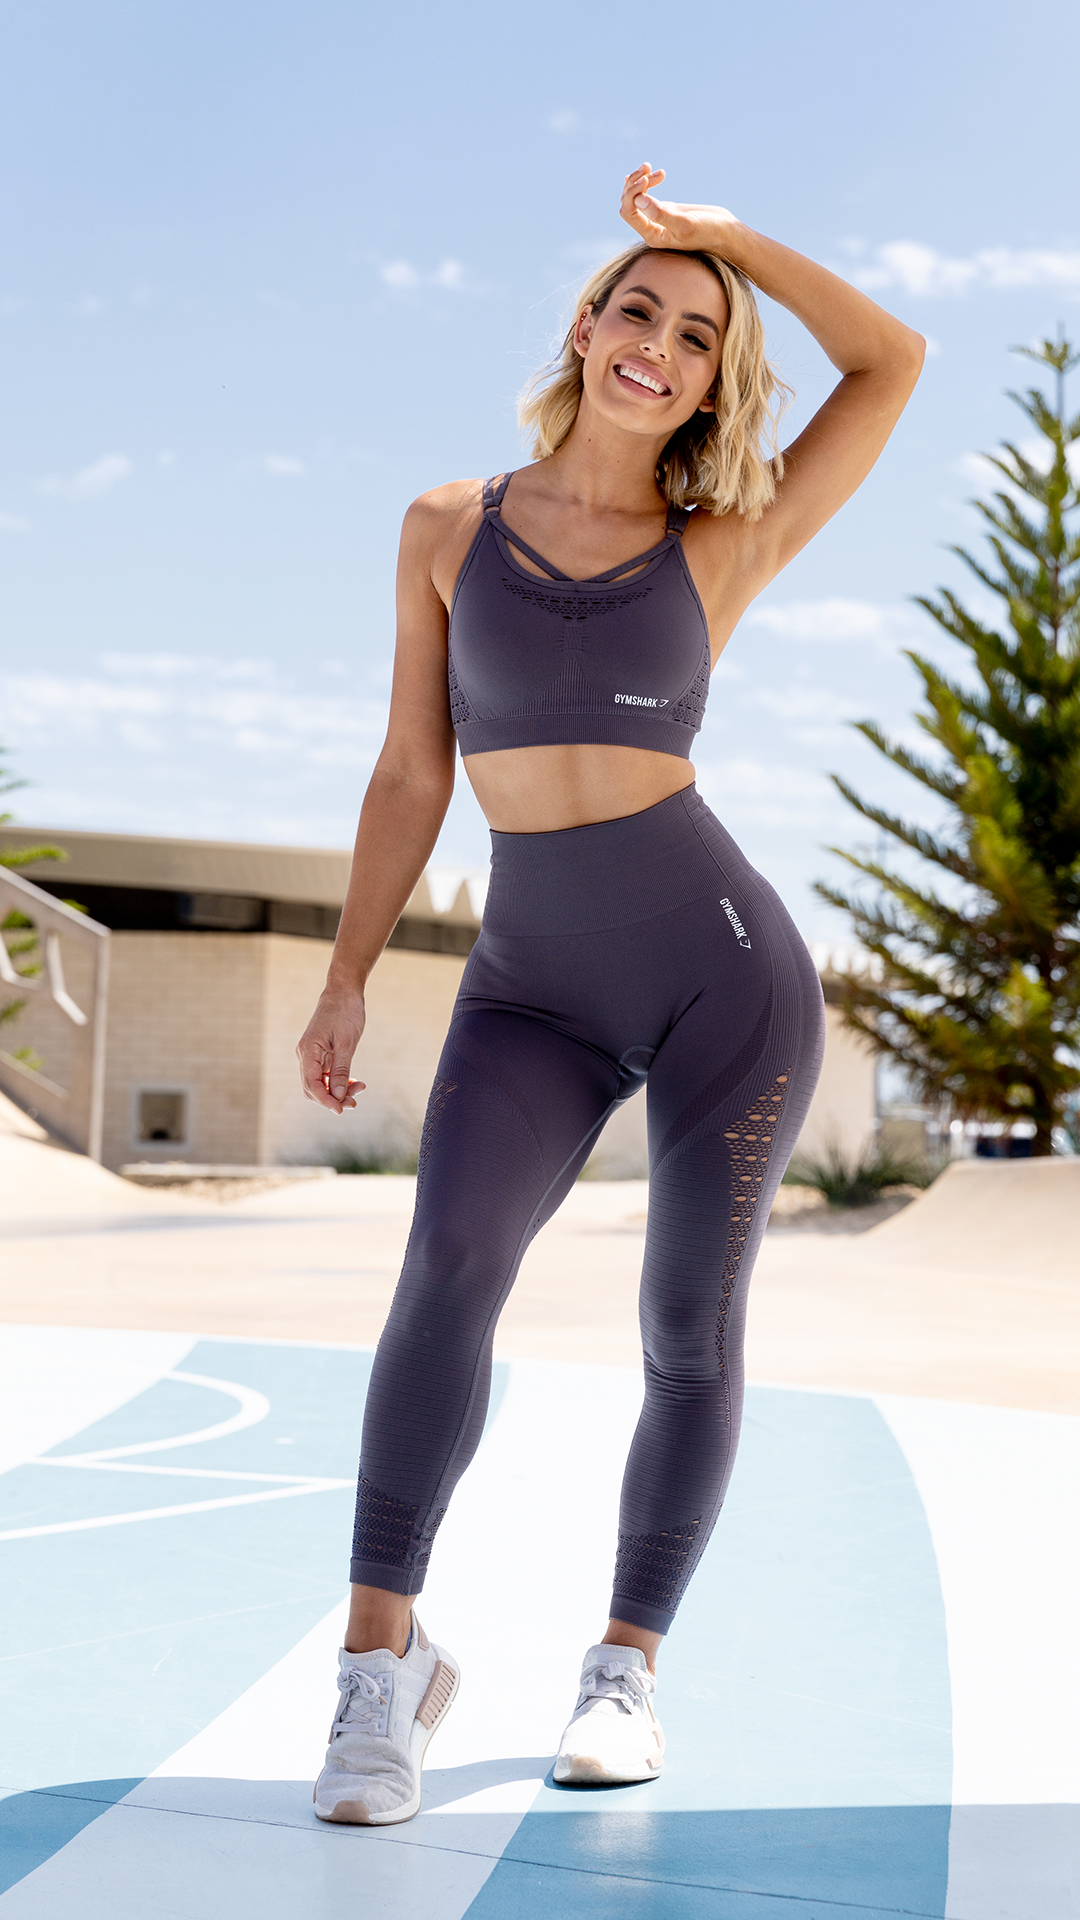 59ac5f0efb Gymshark Energy+ Seamless Leggings - Slate Lavender in 2019 ...